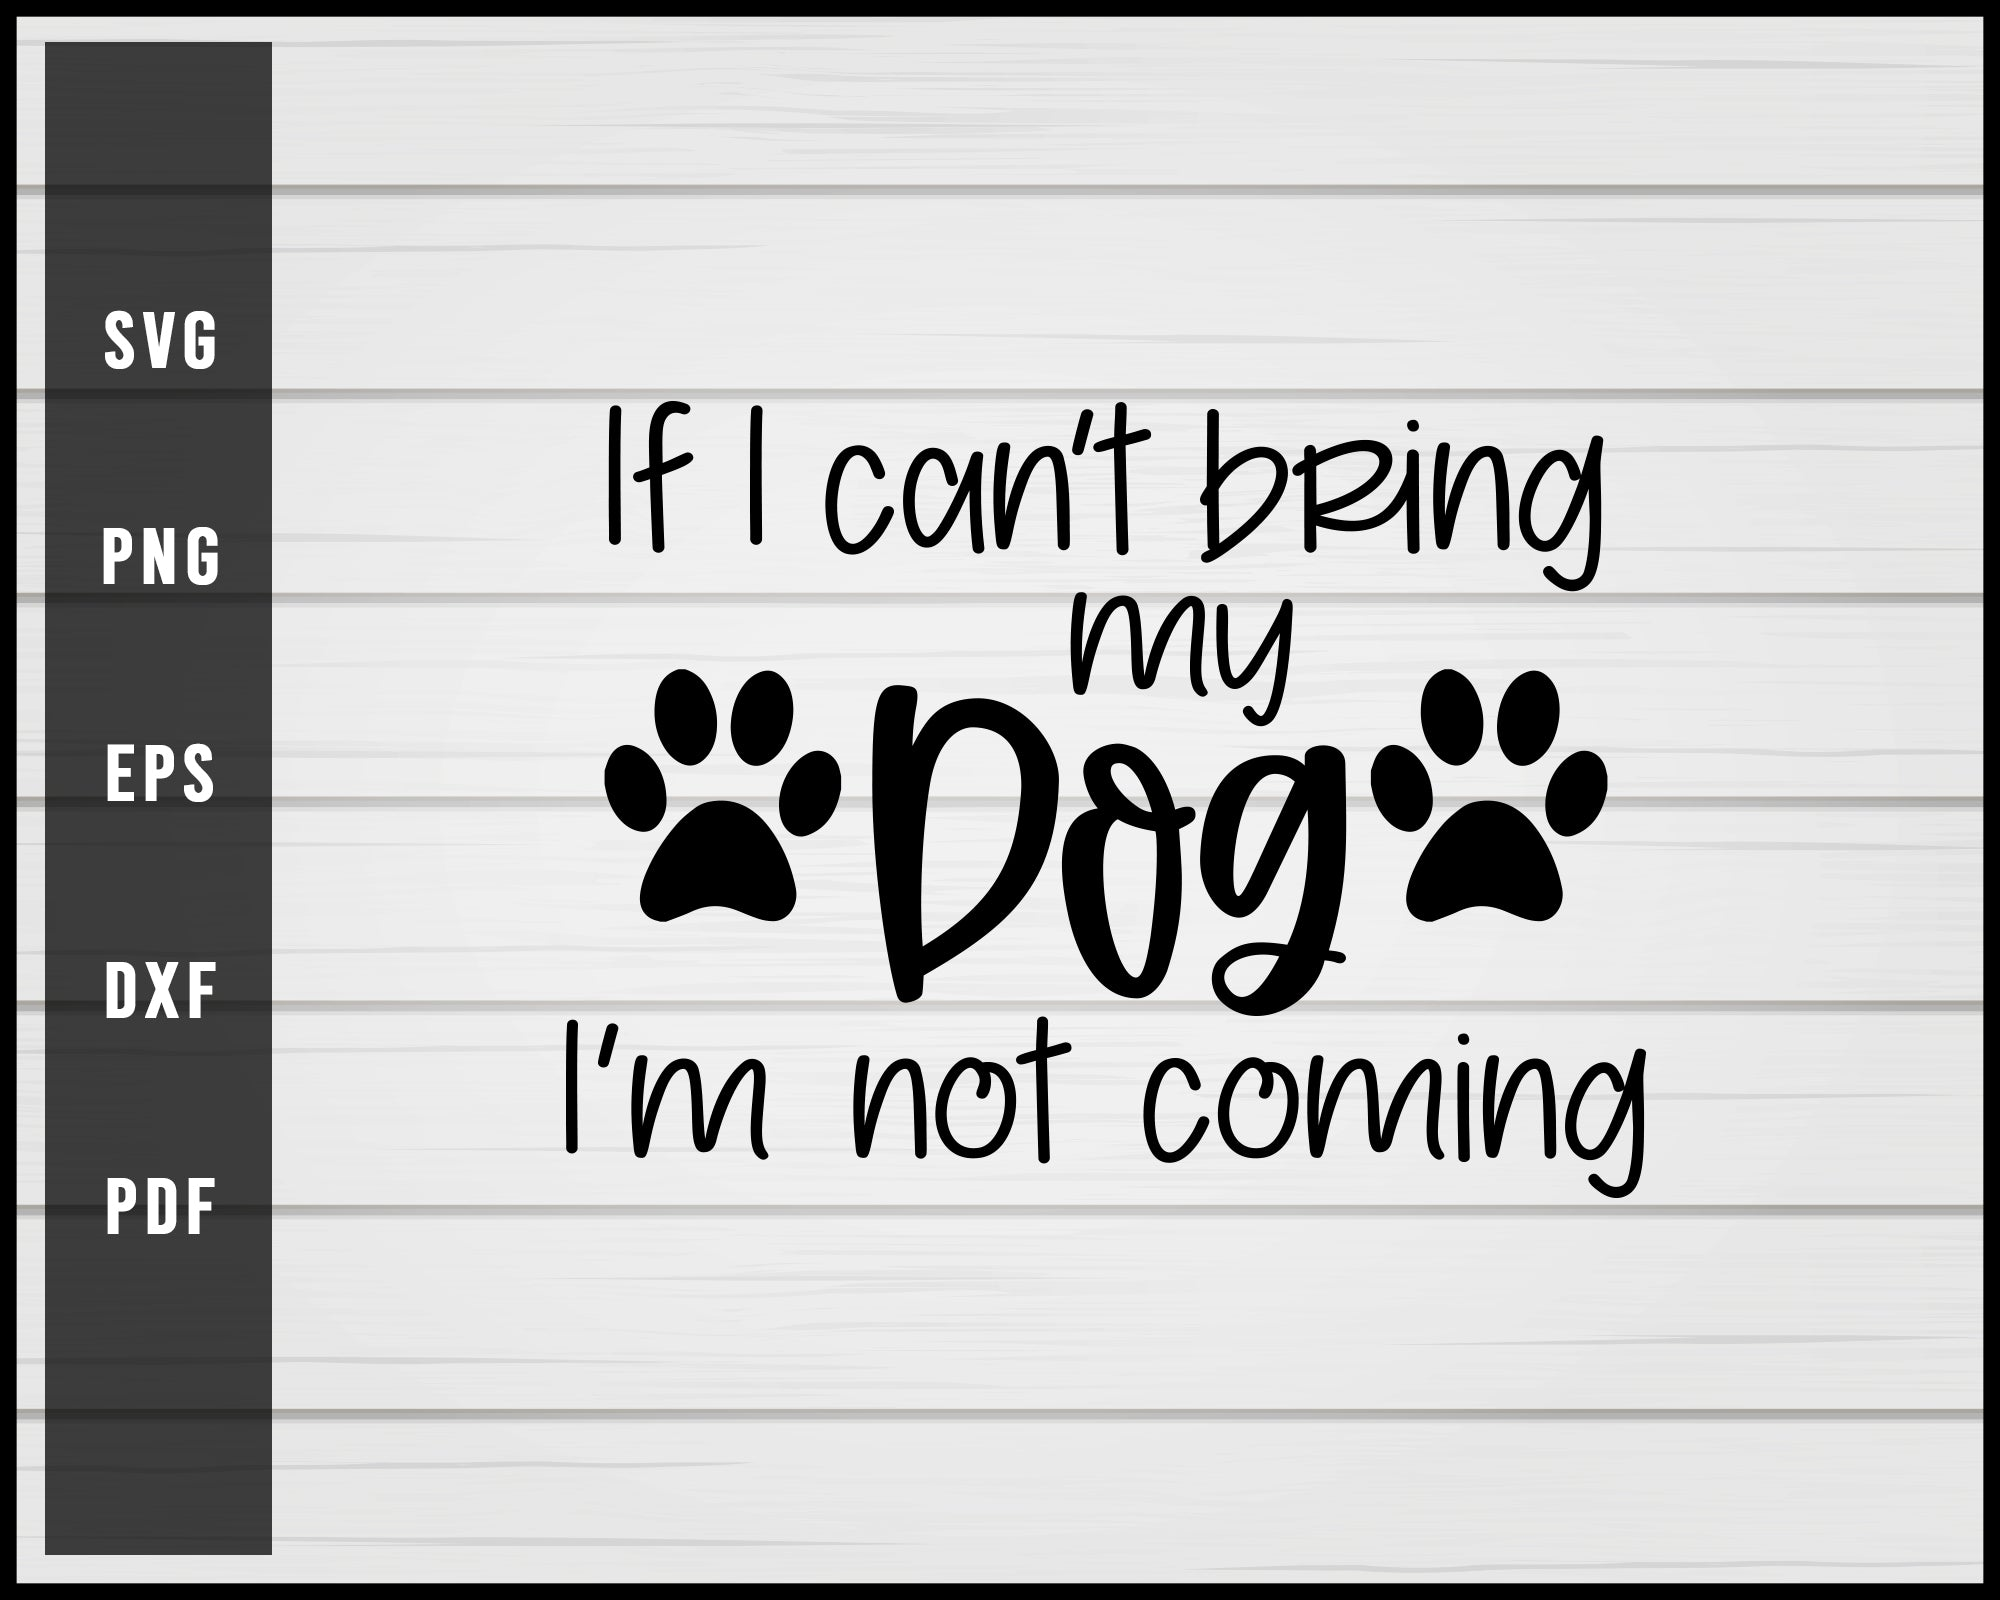 If I cant bring my dog svg png eps Silhouette Designs For Cricut And Printable Files